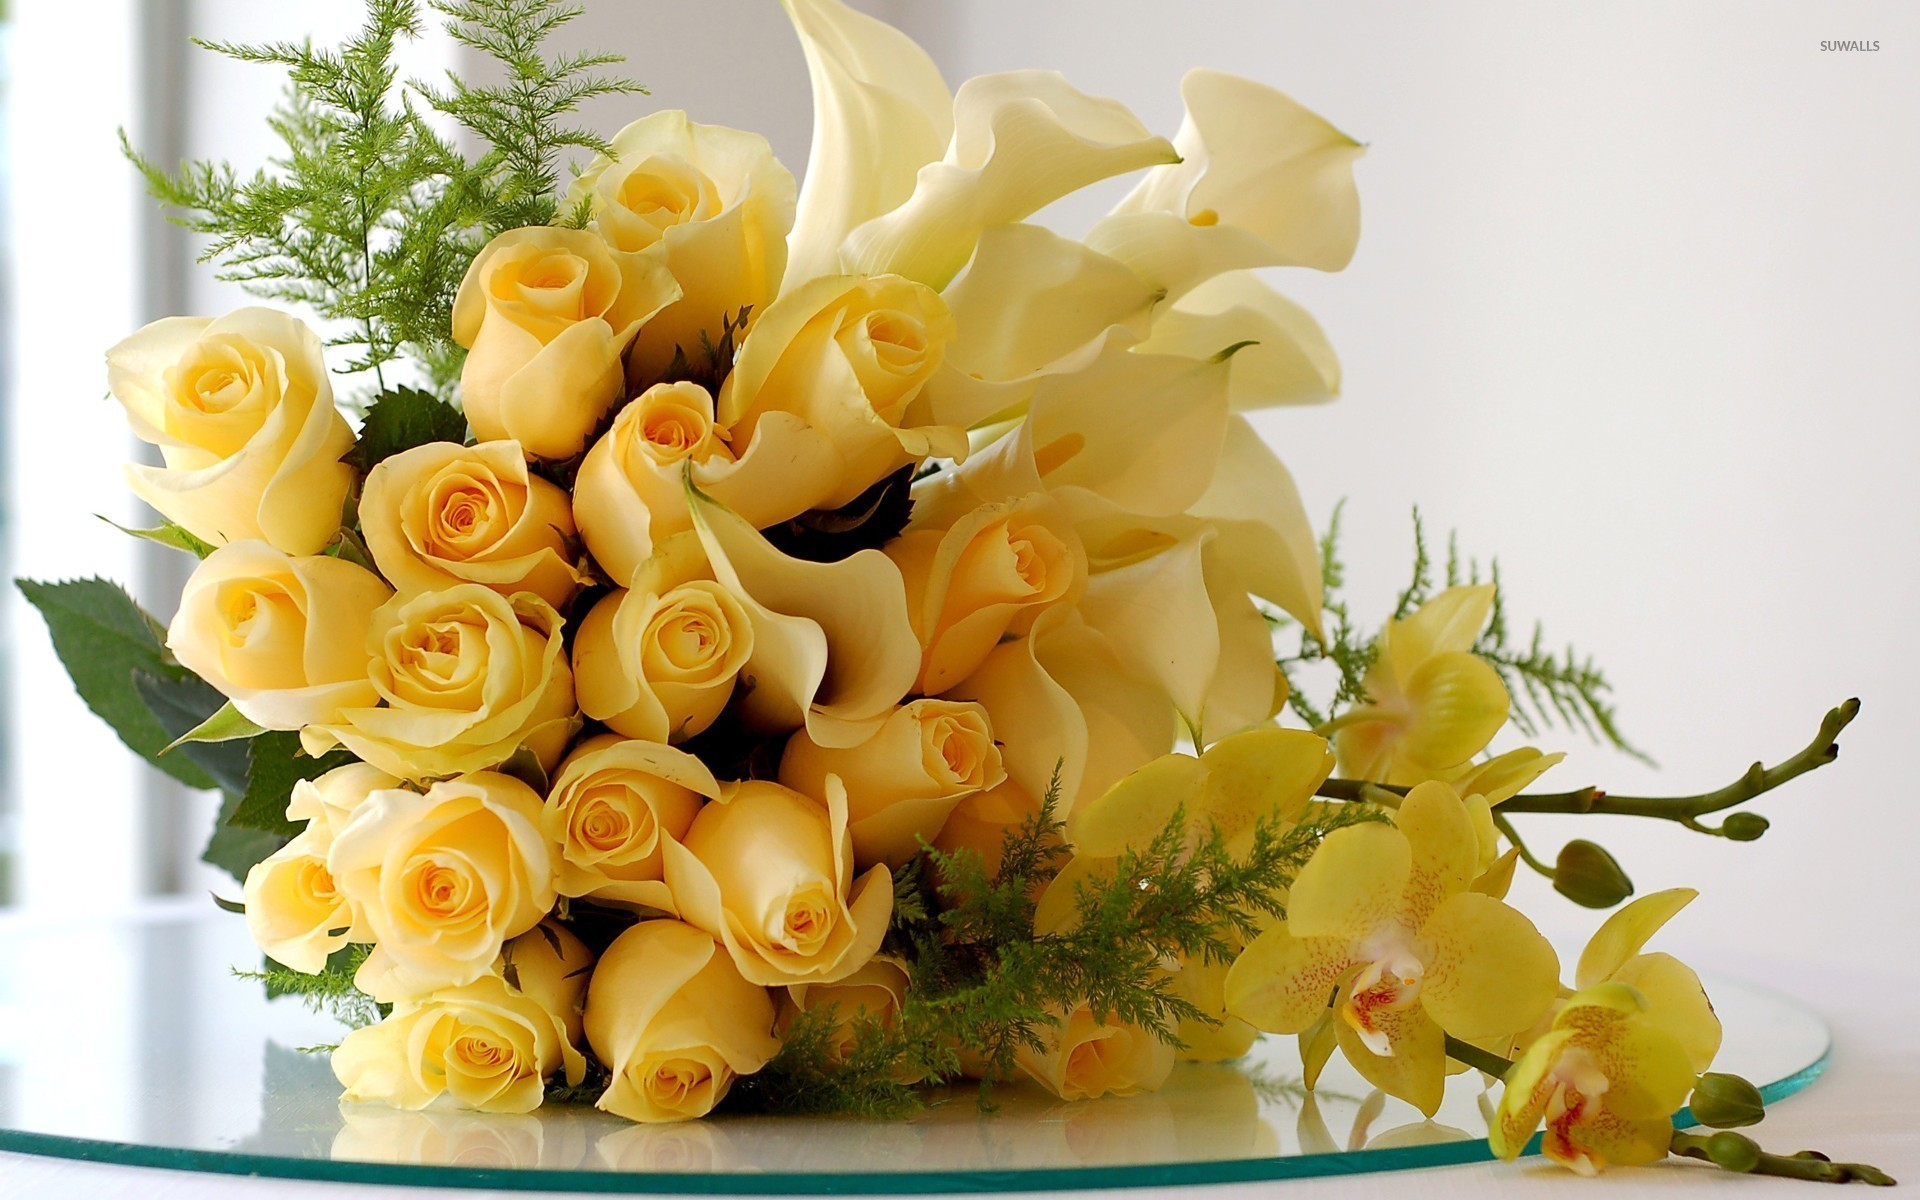 1920x1200 Yellow roses, calla lilies and orchids wallpaper